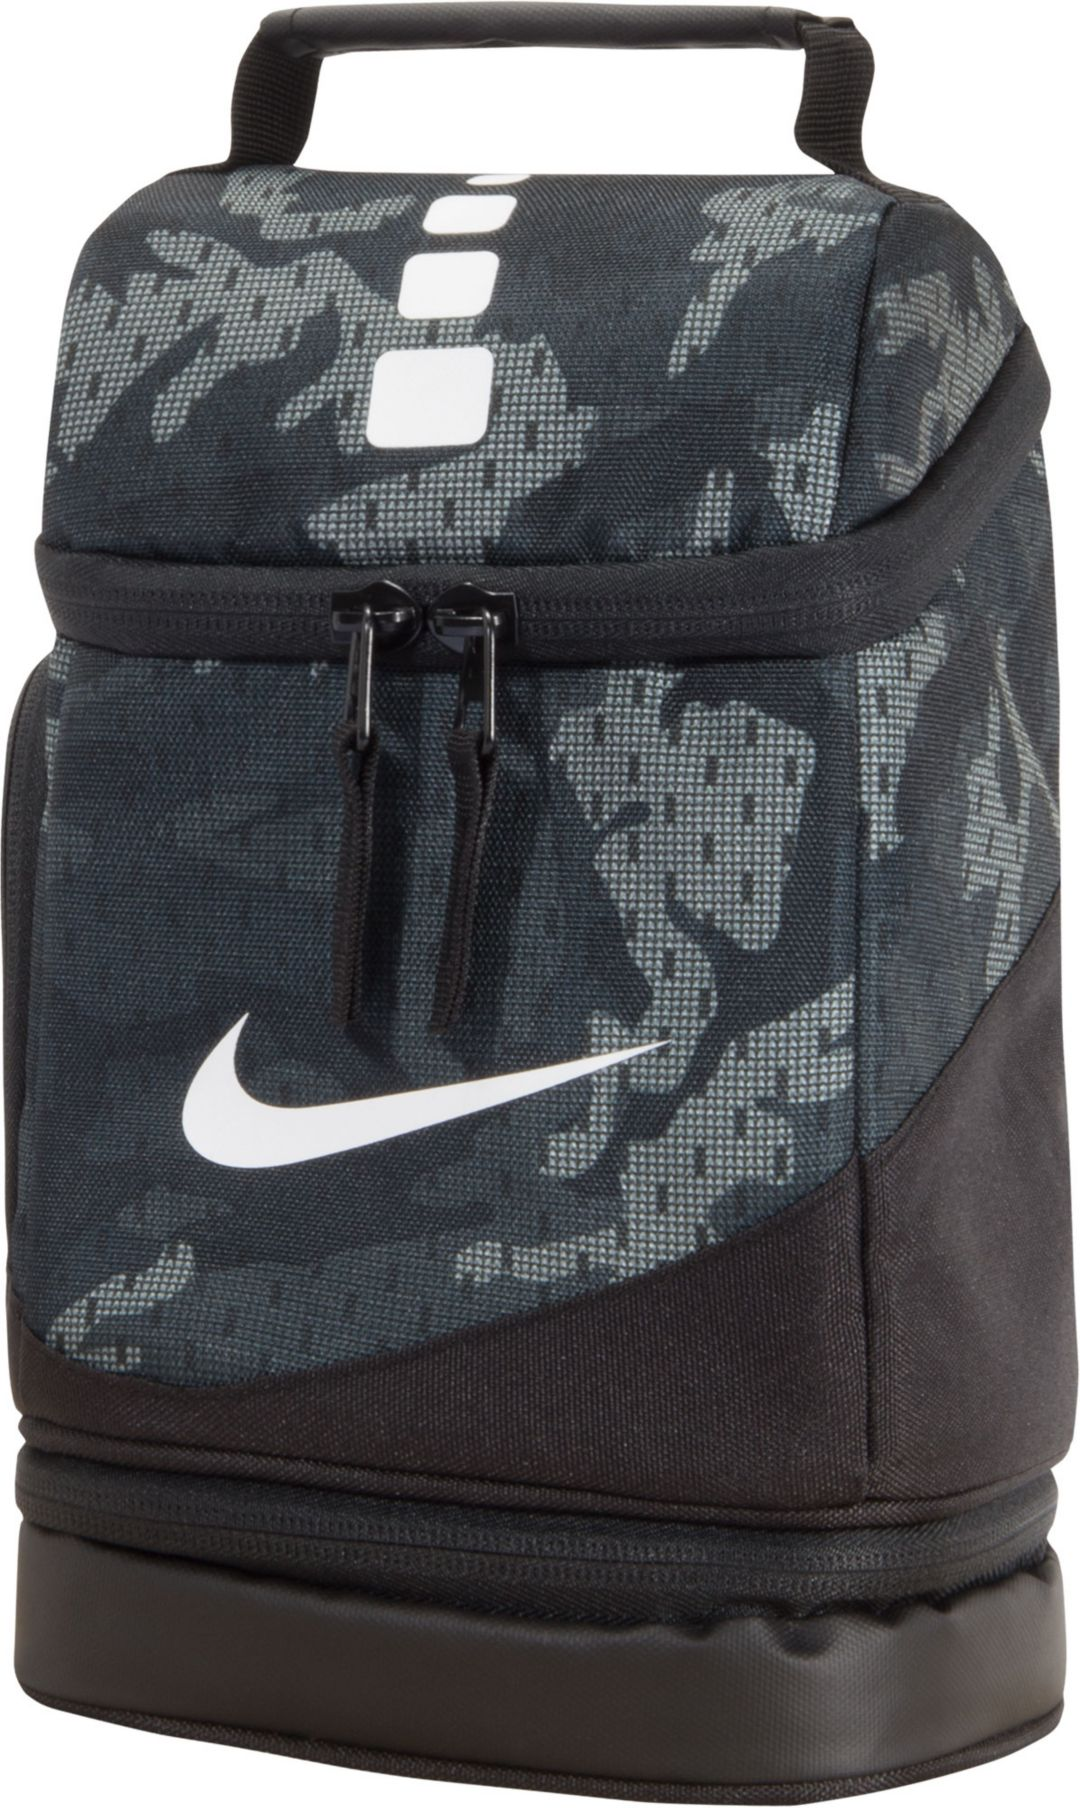 d6ab04a20 Nike Elite Fuel Pack Lunch Tote Bag